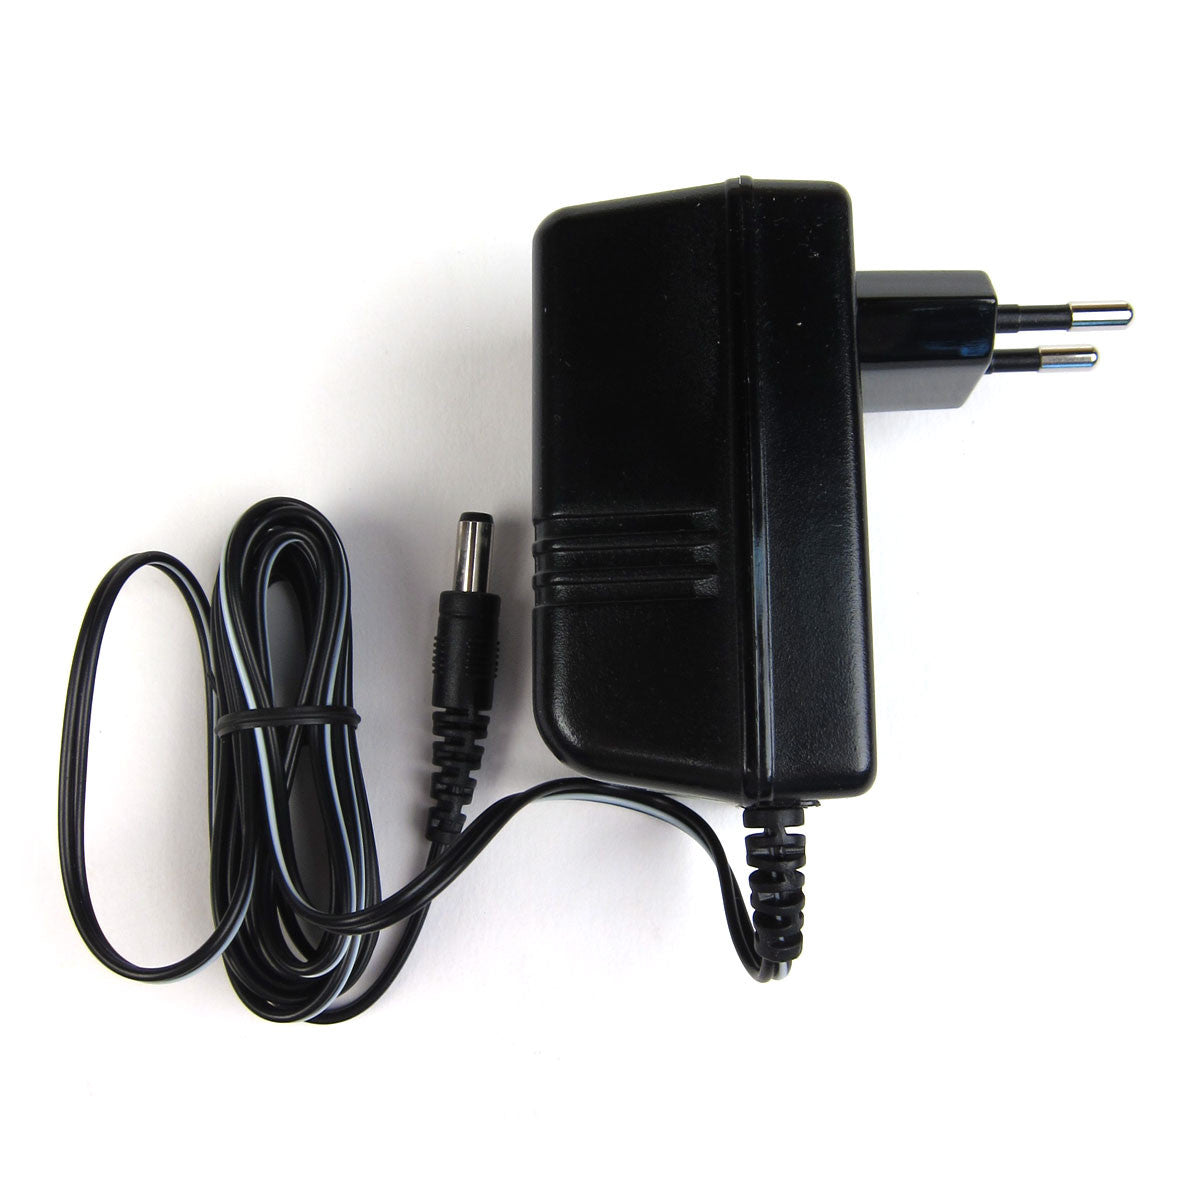 Music Hall: 230 Volt Power Adaptor for Europe (500 mA INT)